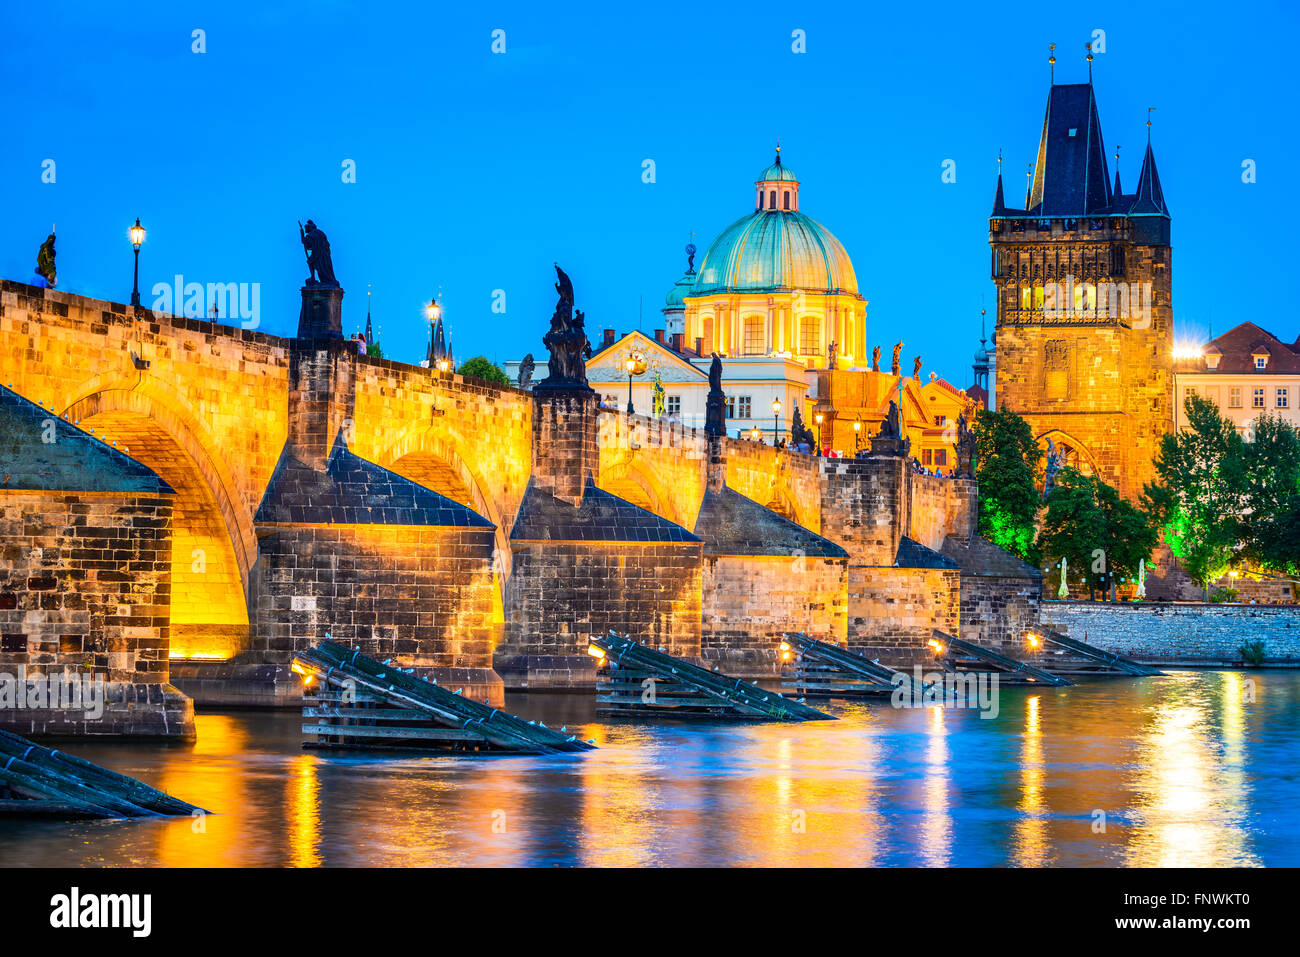 Prague, Czech Republic. Night view with Vltava River, Charles Bridge and Stare Mesto Old Town Tower. Twilight image - Stock Image